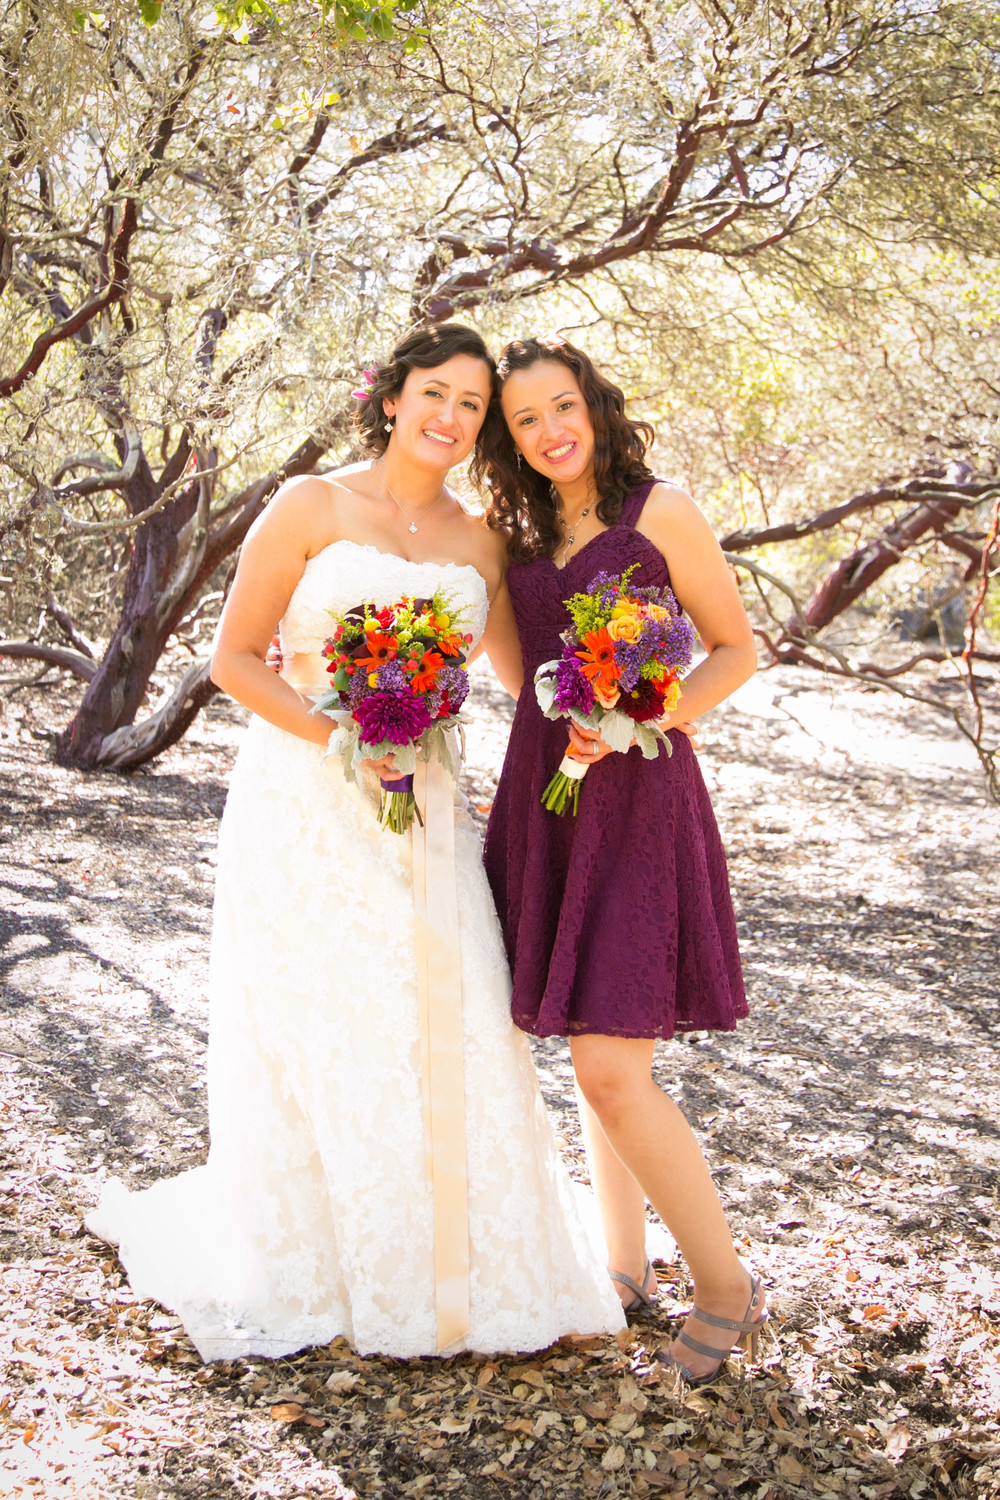 Tiber Canyon Wedding019.JPG